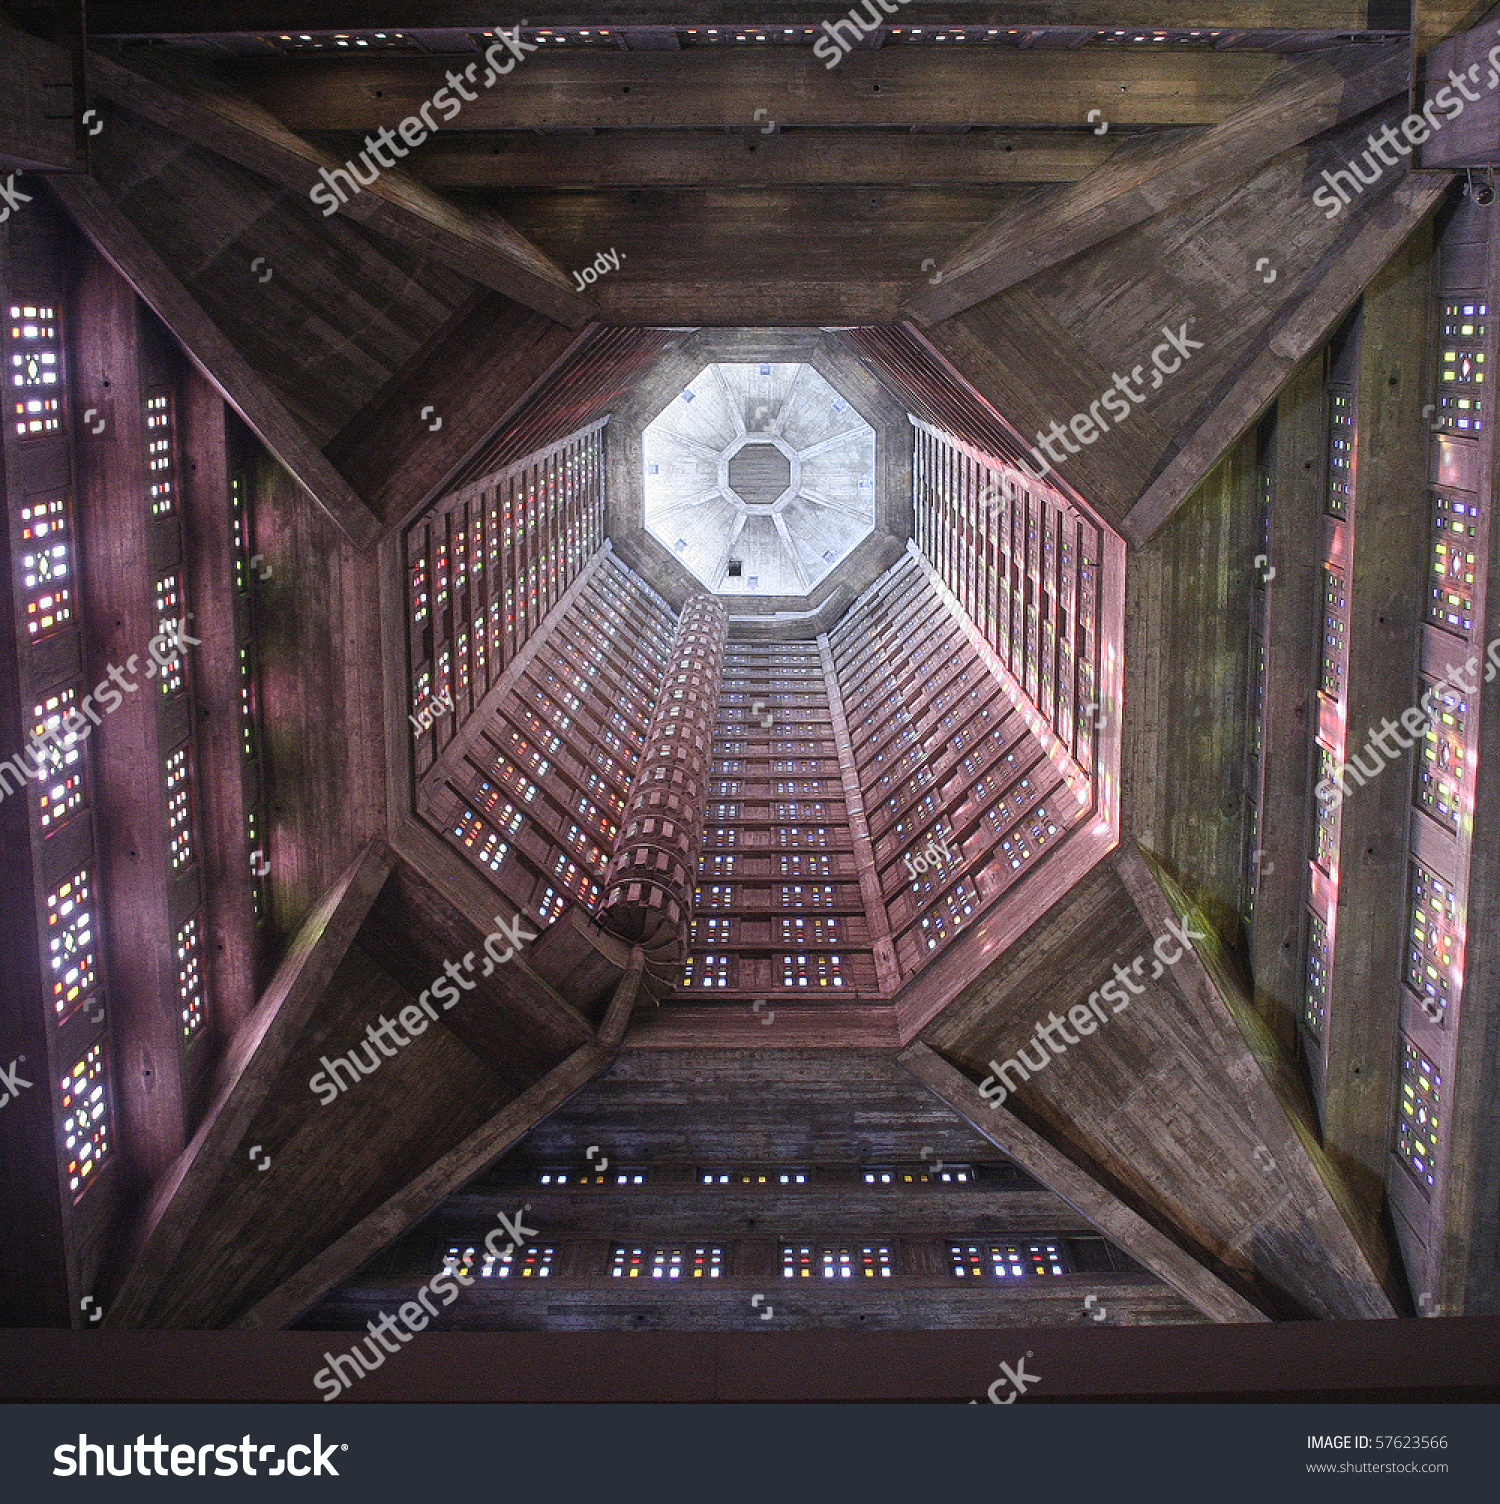 saint joseph church interior of a church tower le havre normandy france imagen de archivo. Black Bedroom Furniture Sets. Home Design Ideas